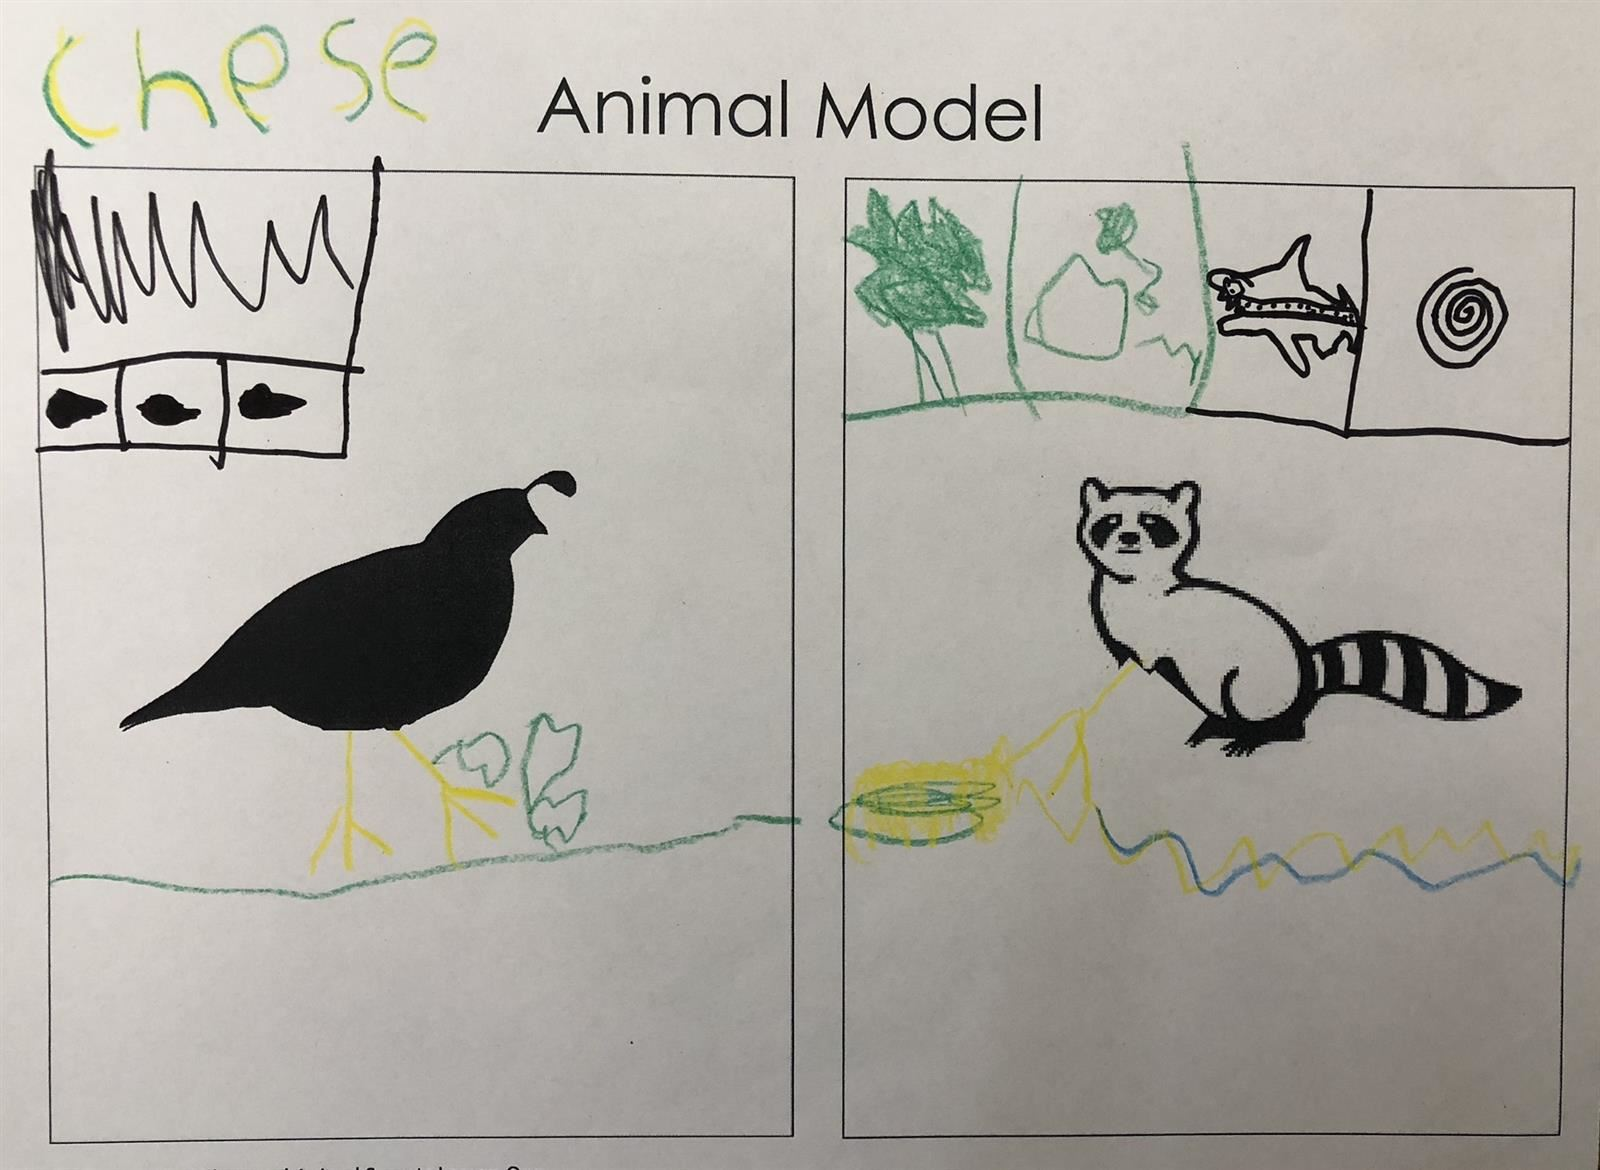 Model of Animals and Their Food Sources